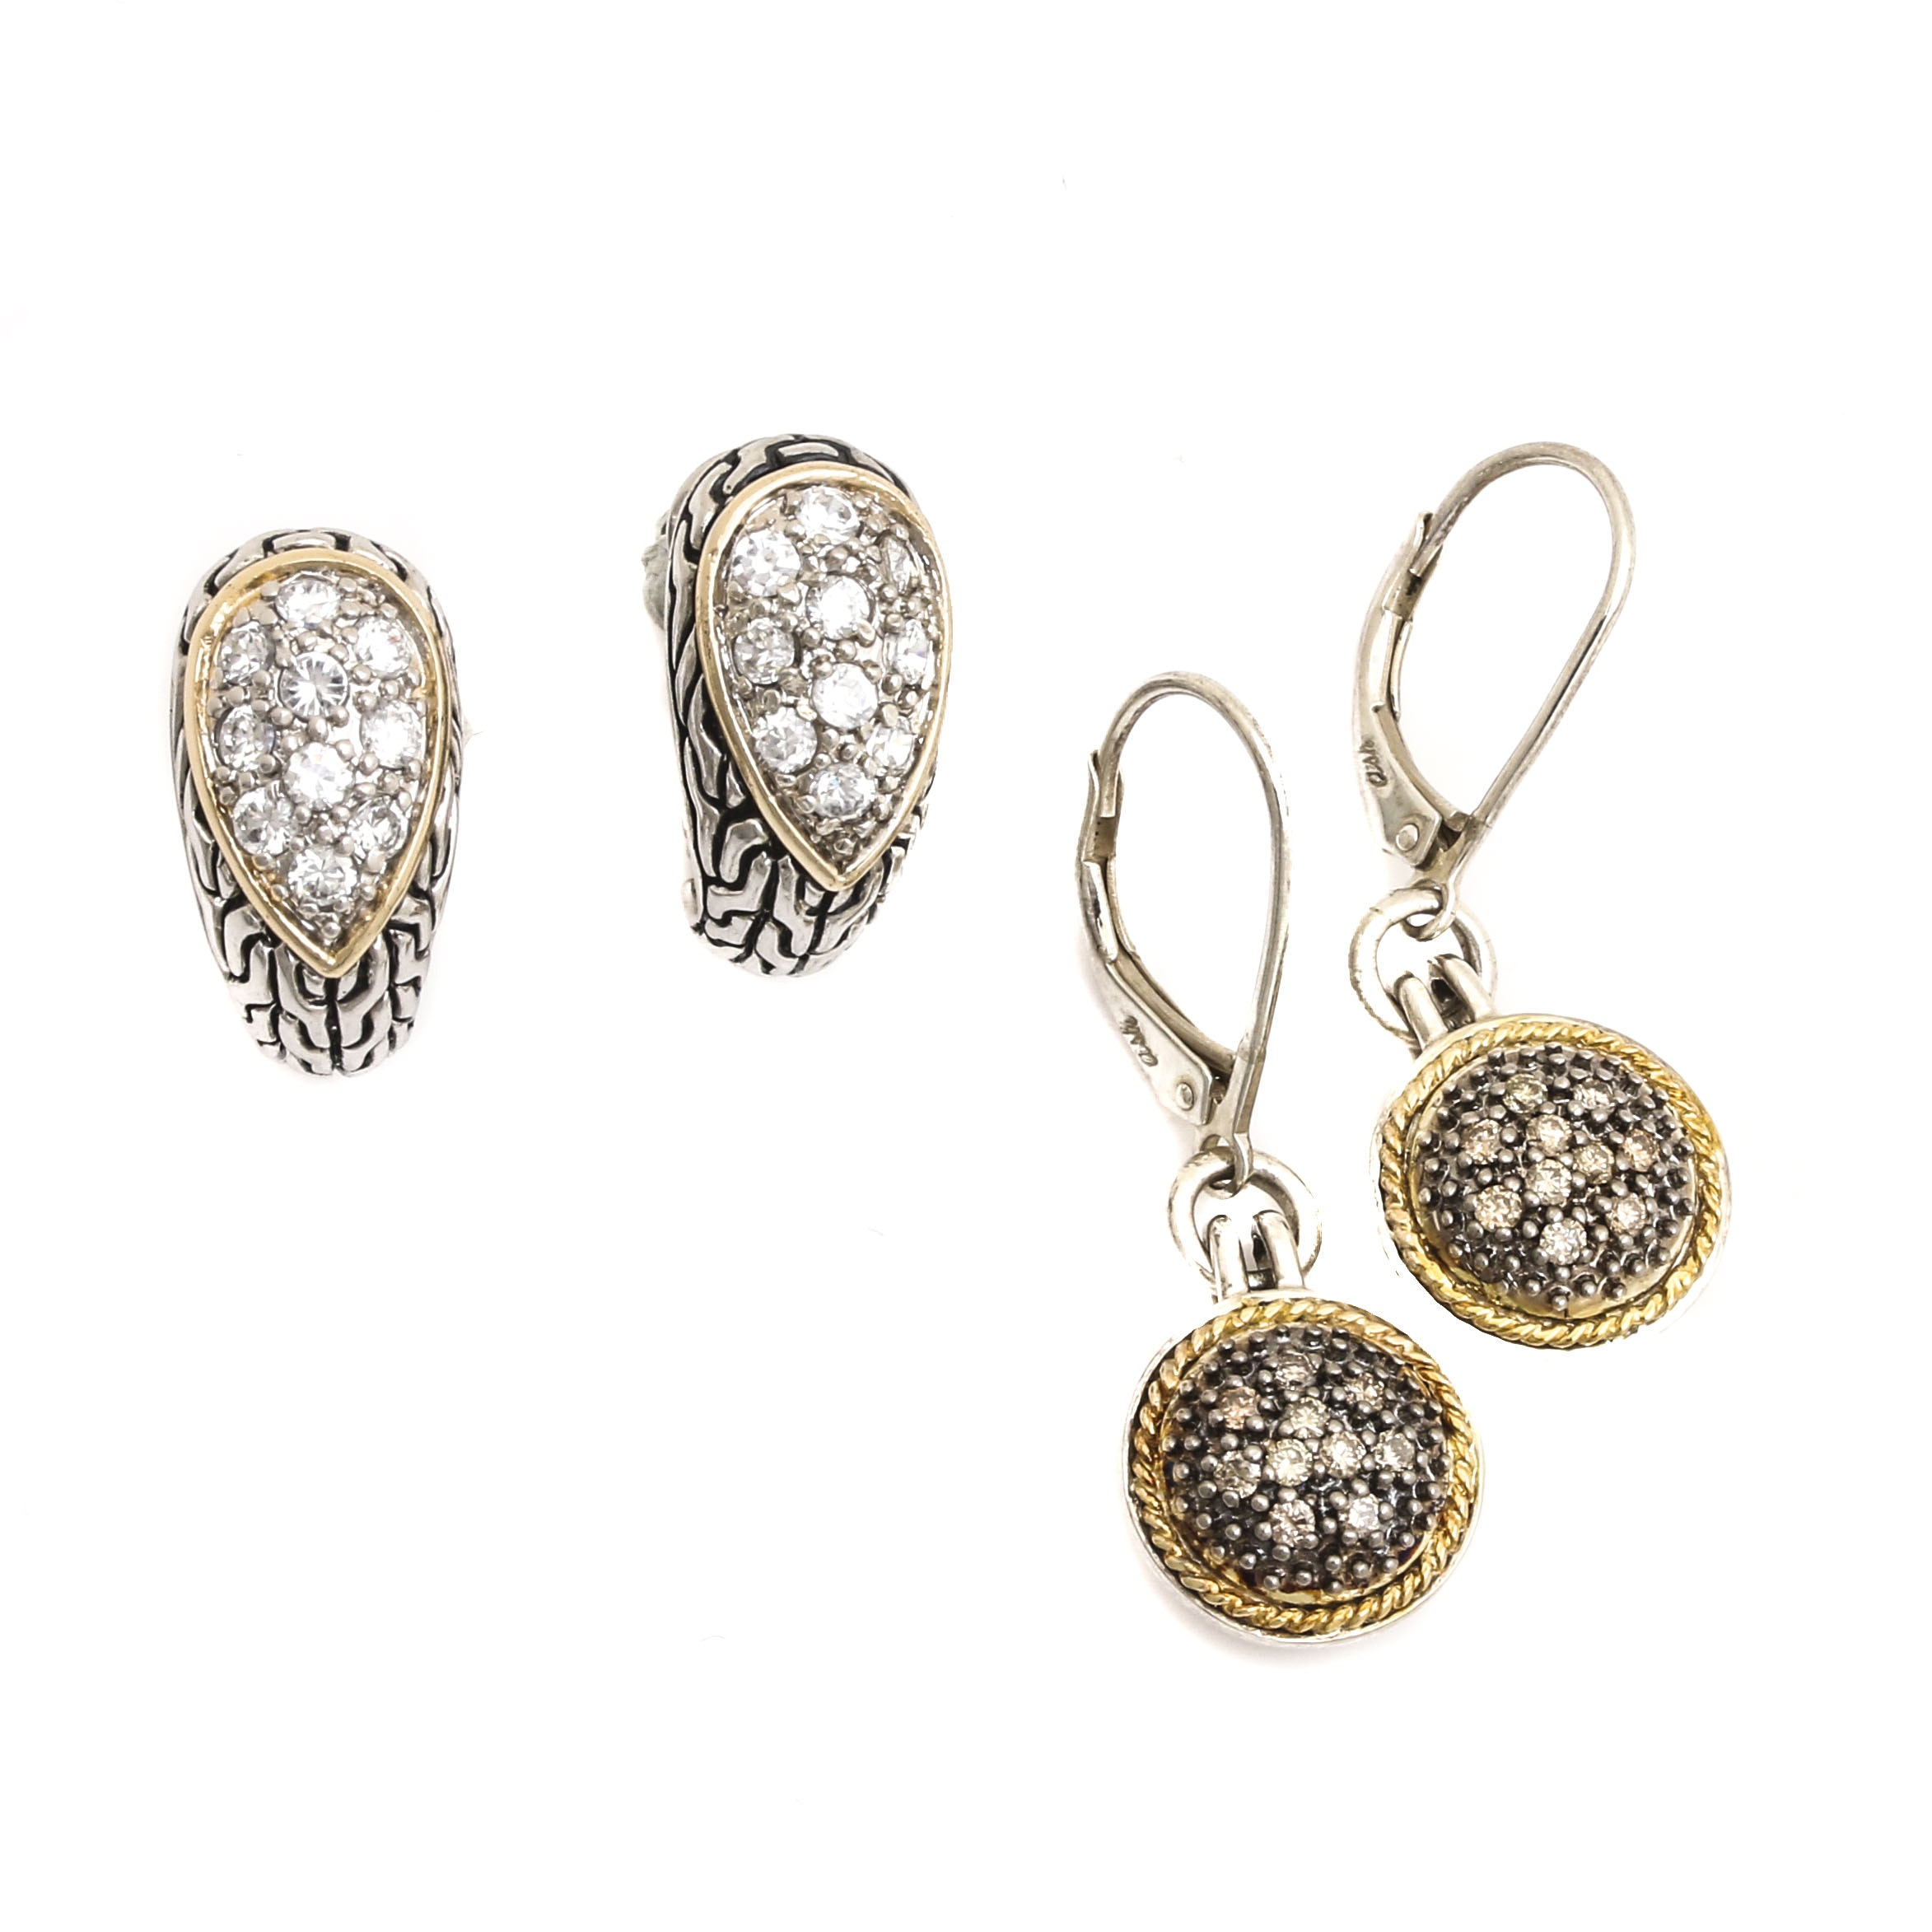 Sterling Silver Earrings Featuring Diamonds